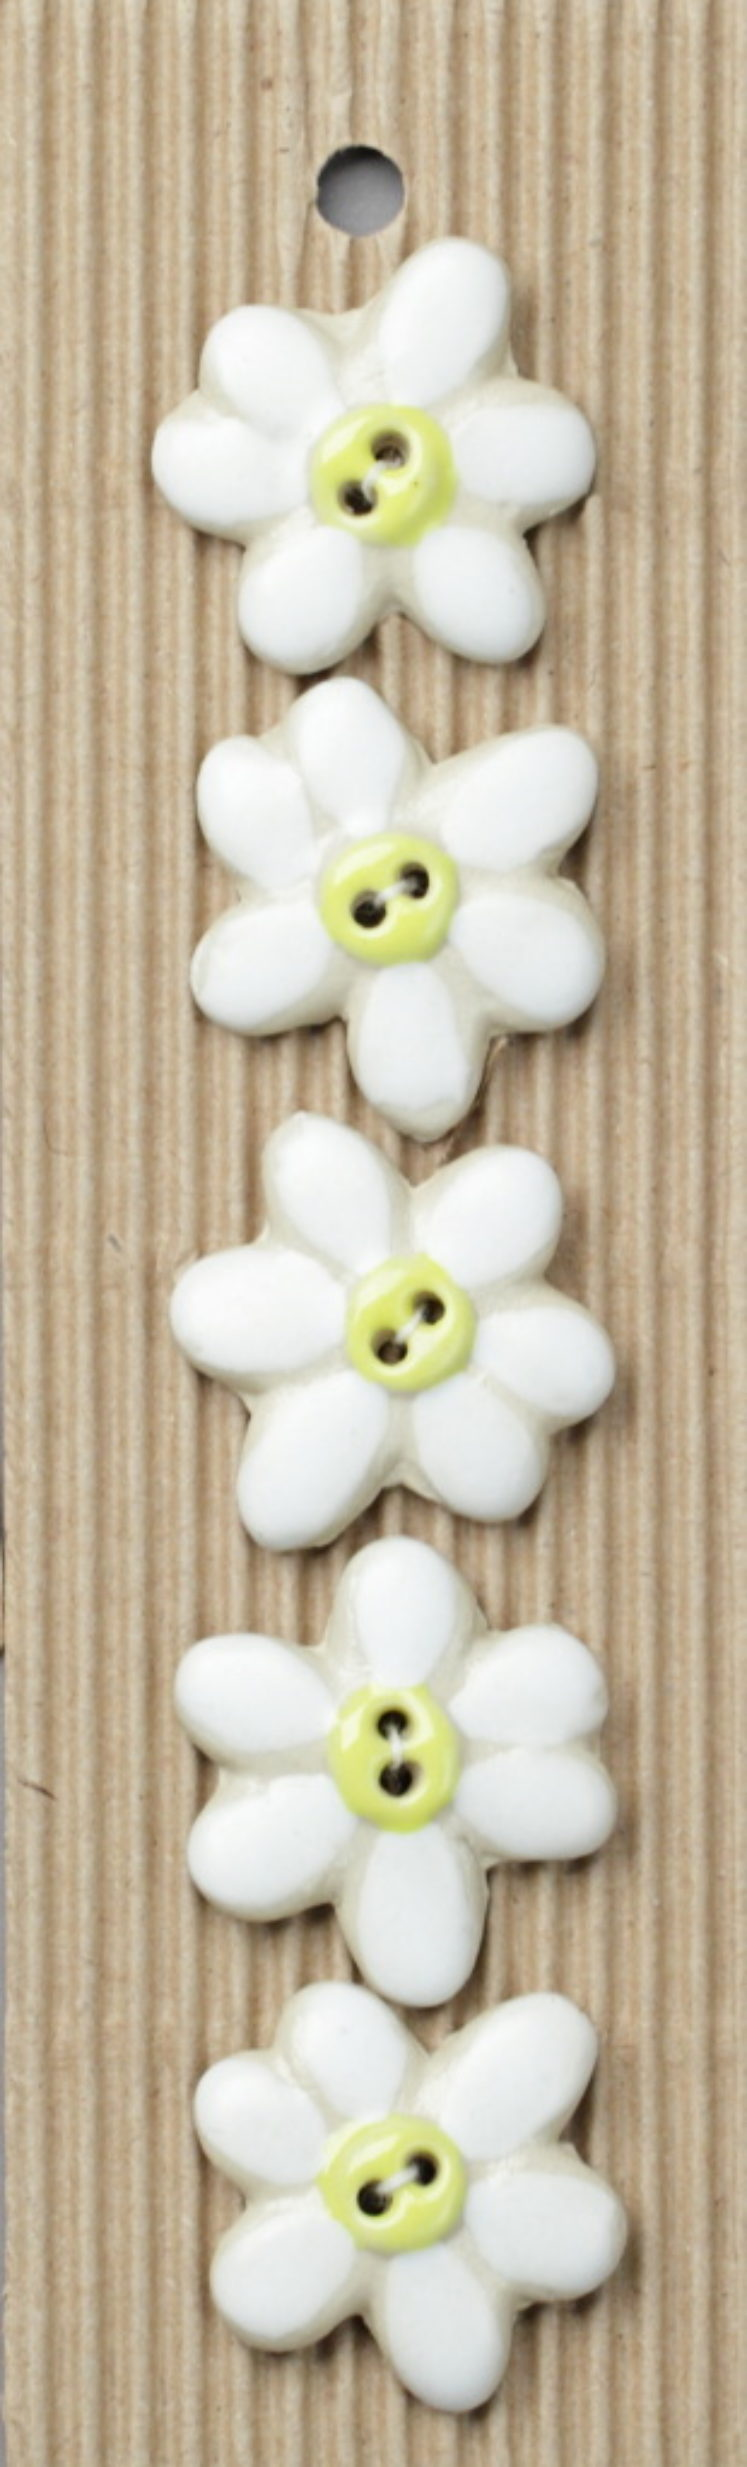 Ceramic Buttons – Daisies L89